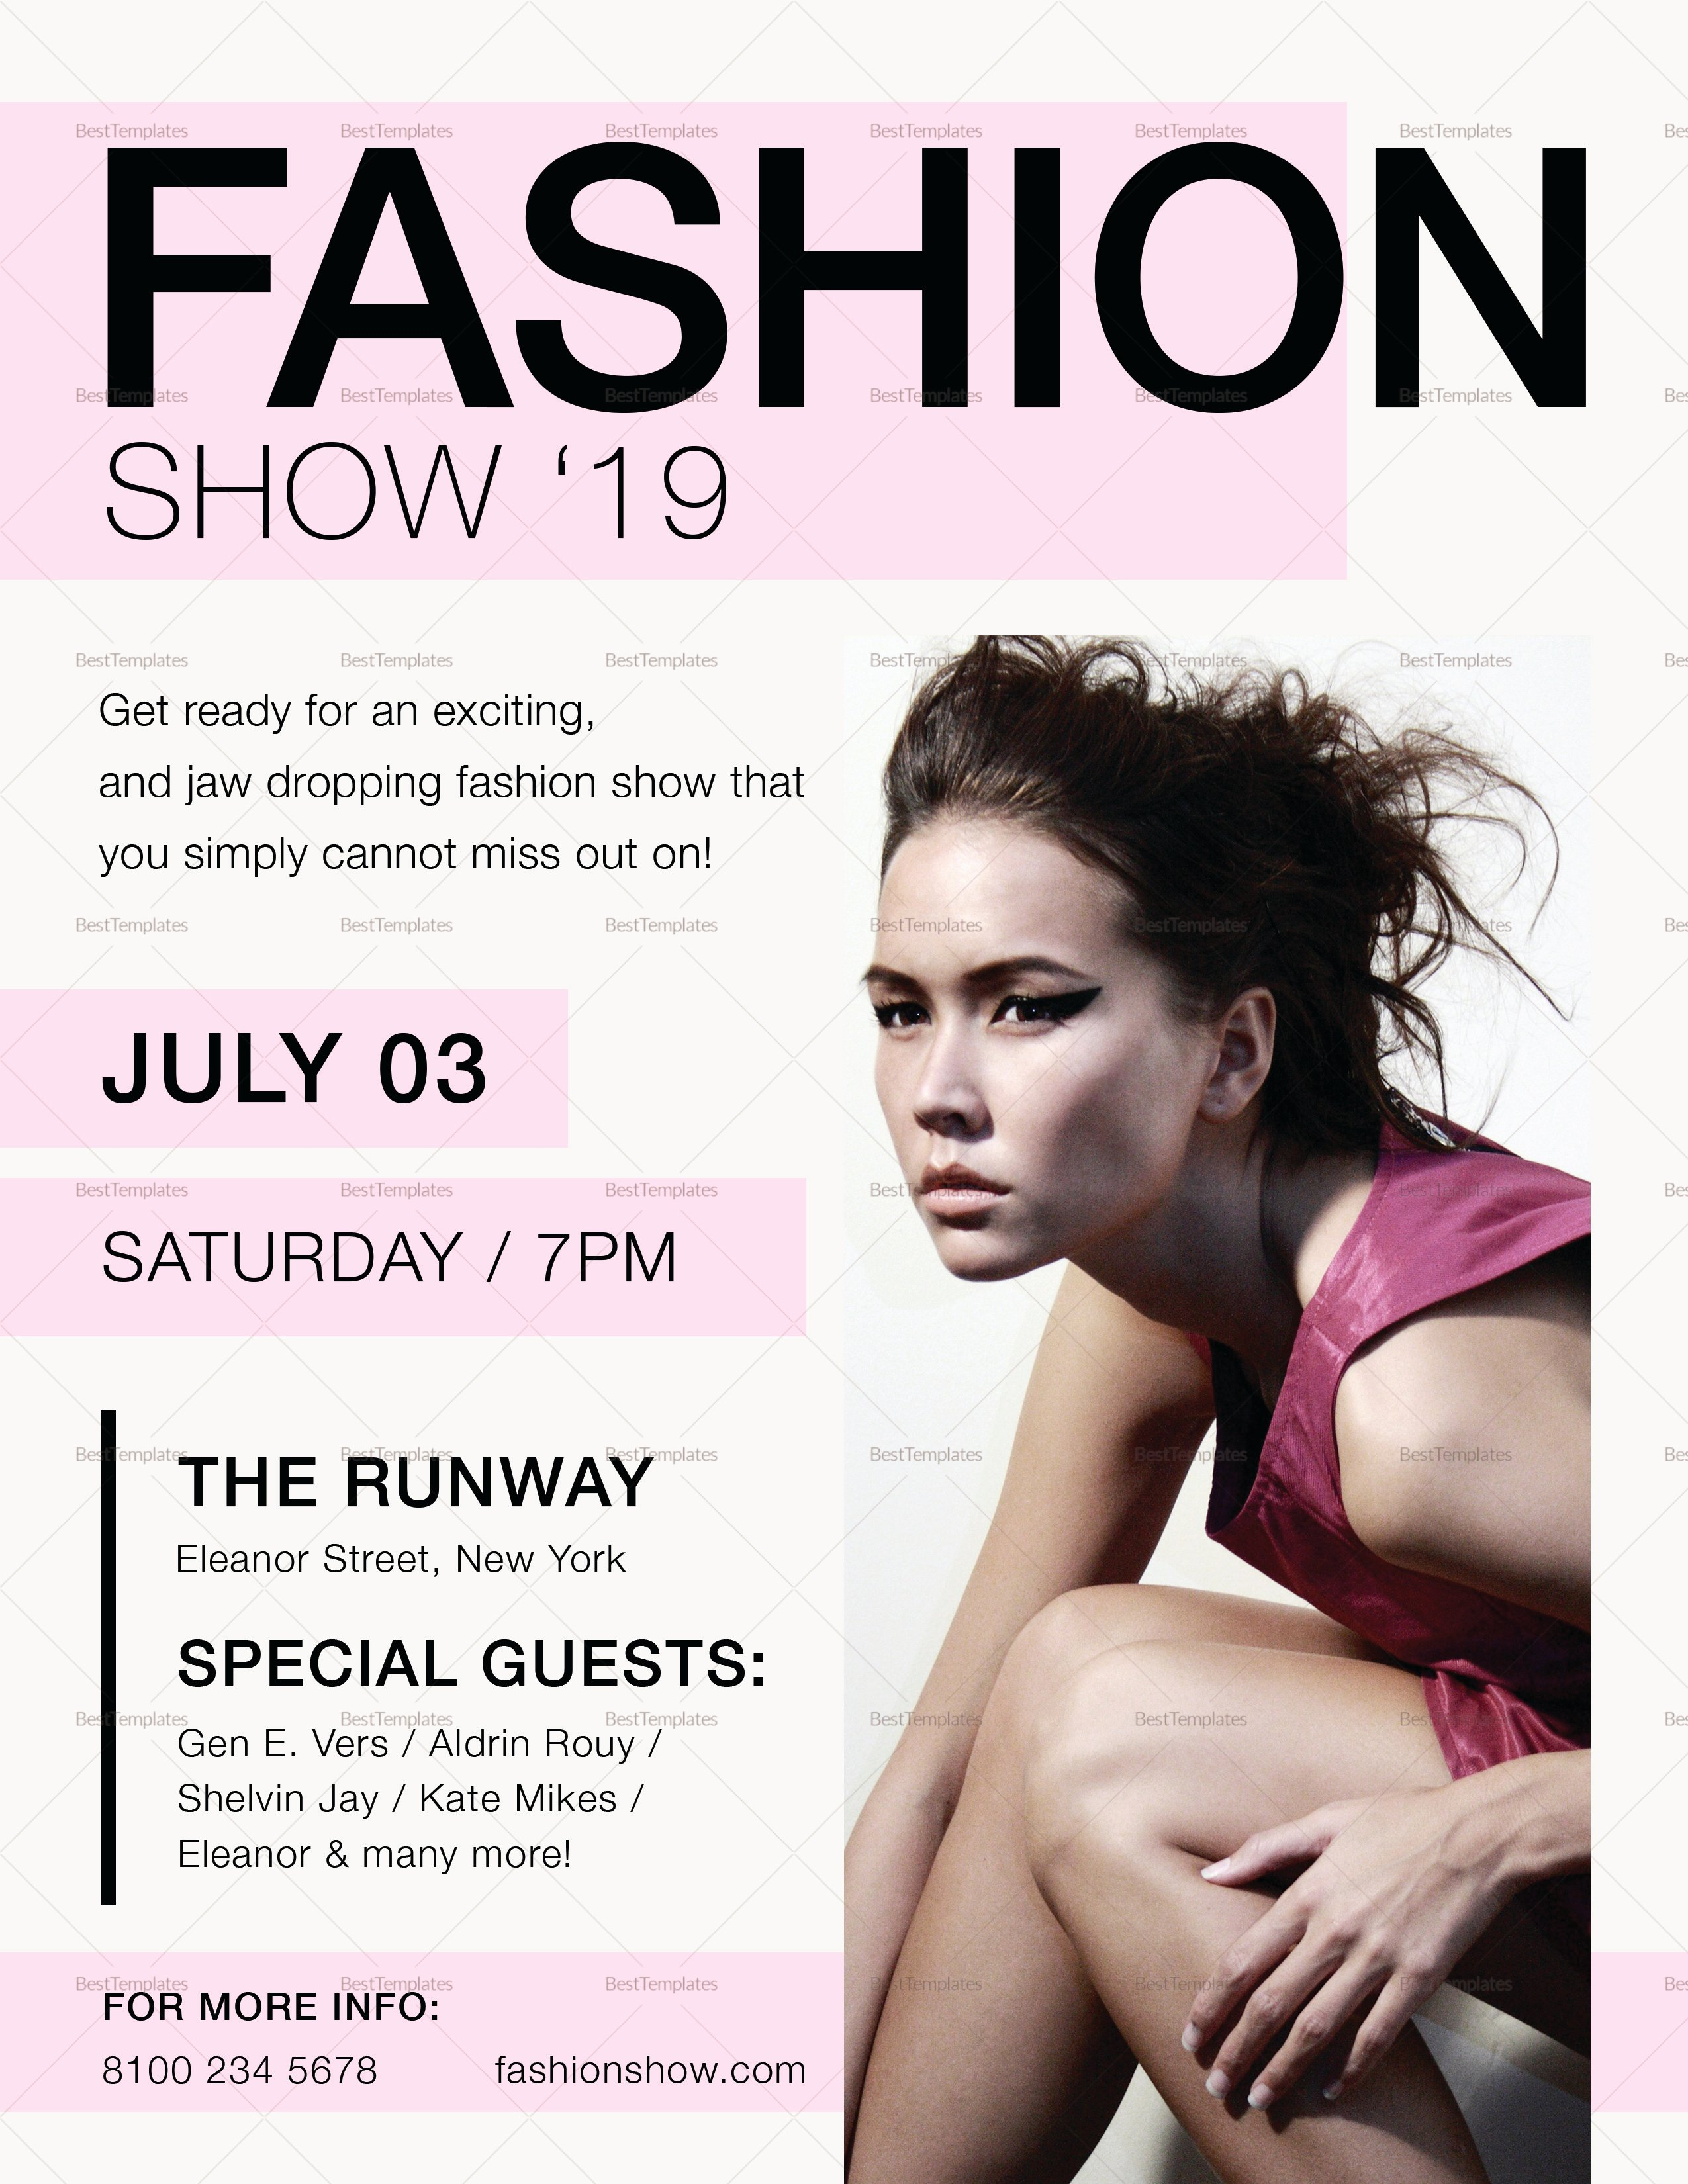 Fashion Show Flyer Template Awesome Fashion Show Flyer Design Template In Psd Word Publisher